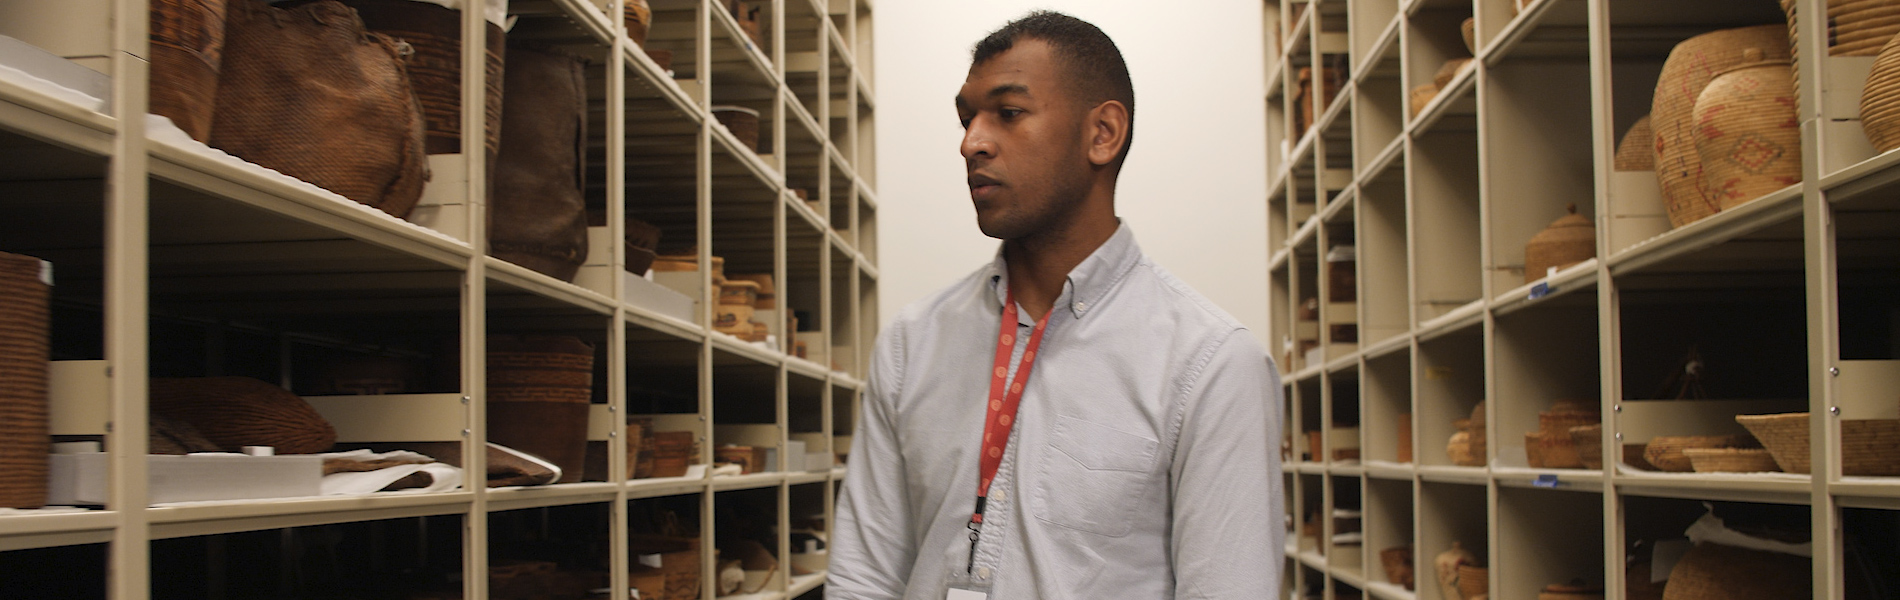 Student looking through shelves of historical items and documents